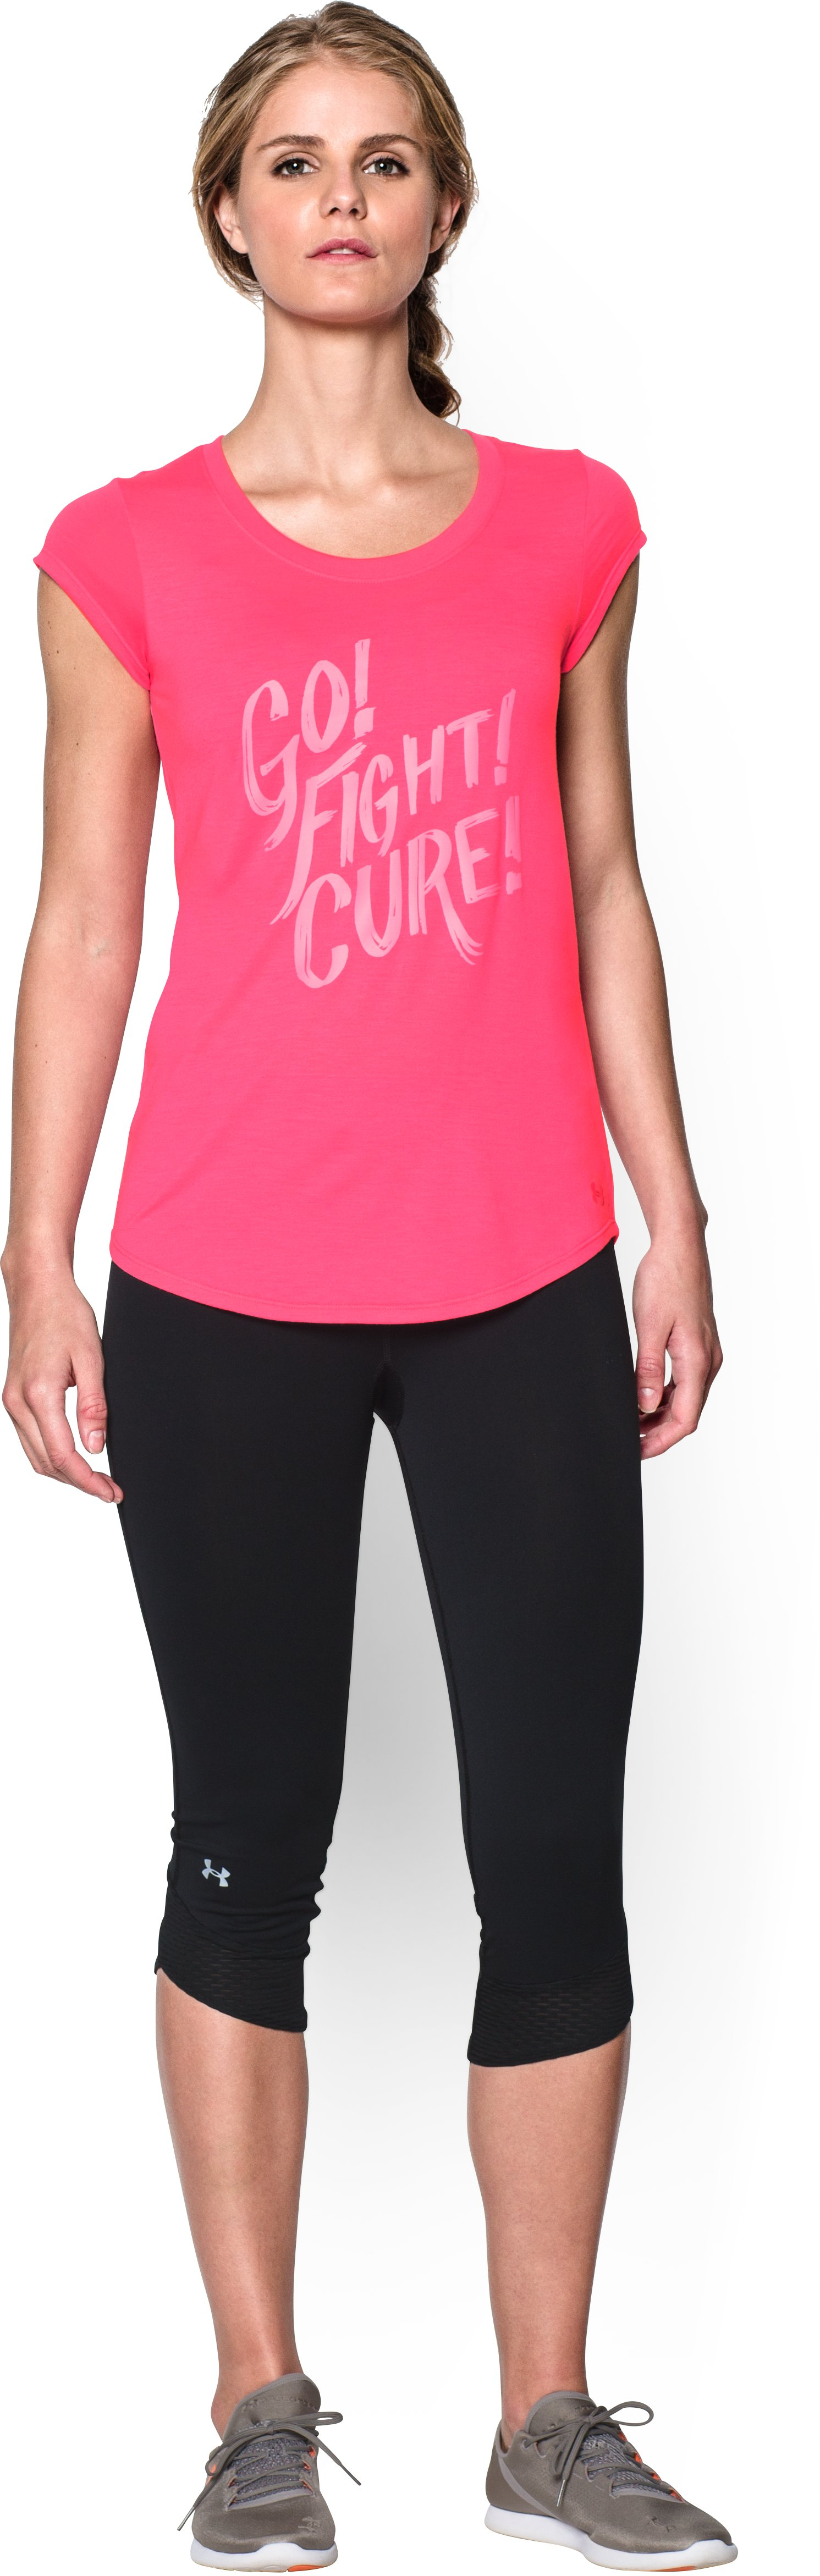 Women's UA Power In Pink® Go Fight Cure T-Shirt, Cerise, zoomed image